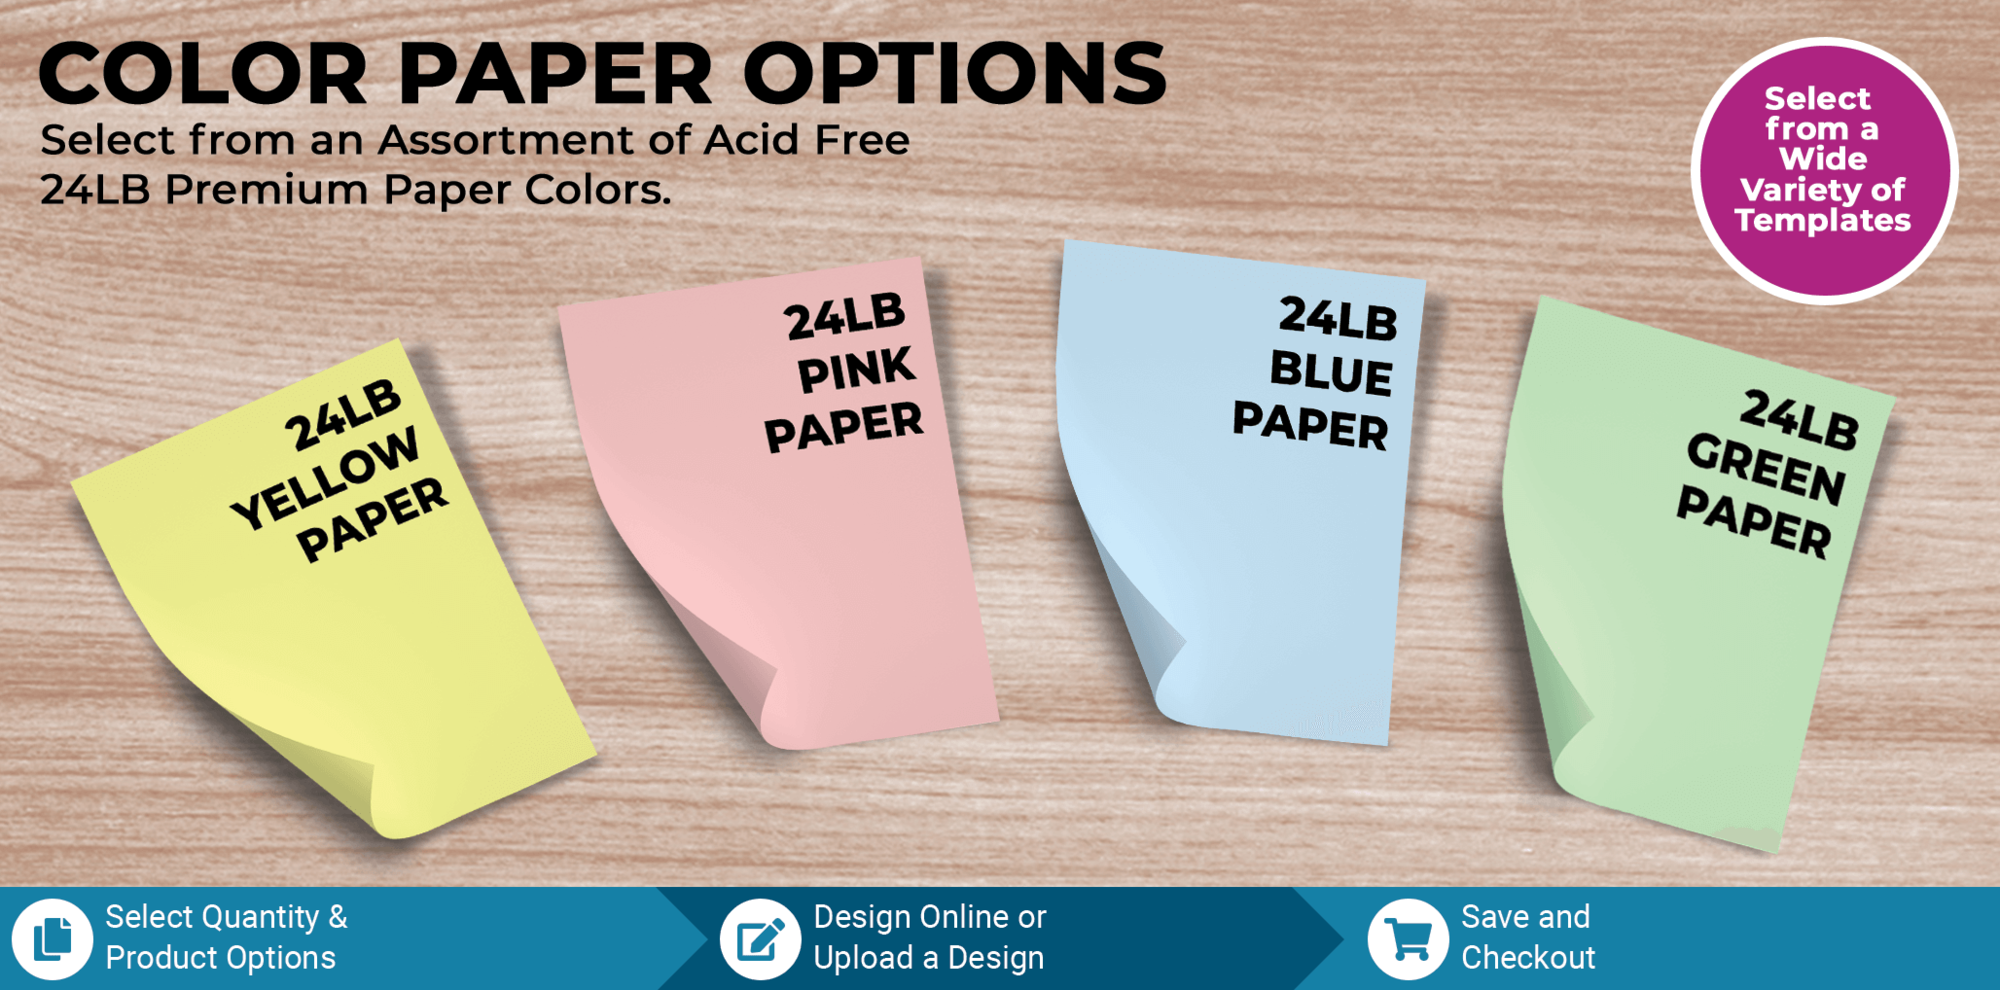 https://printpps.com/images/products_gallery_images/Custom-Sticky-Notes_Product-Page-Banner-287.png